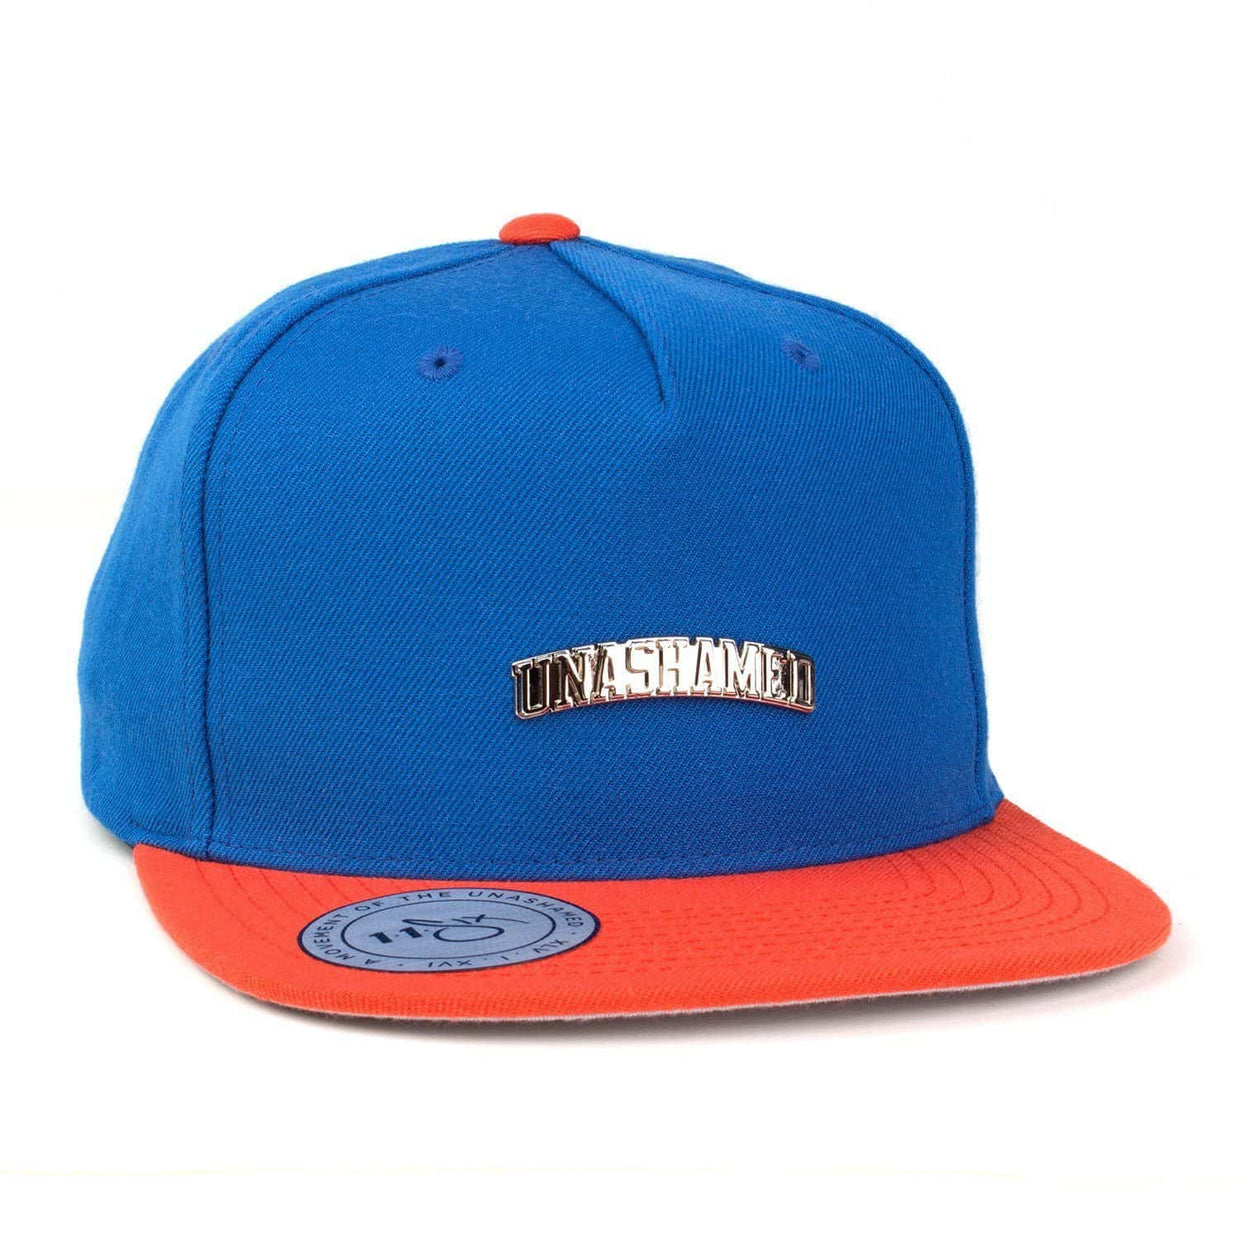 'Unashamed' Snapback - Royal & Orange